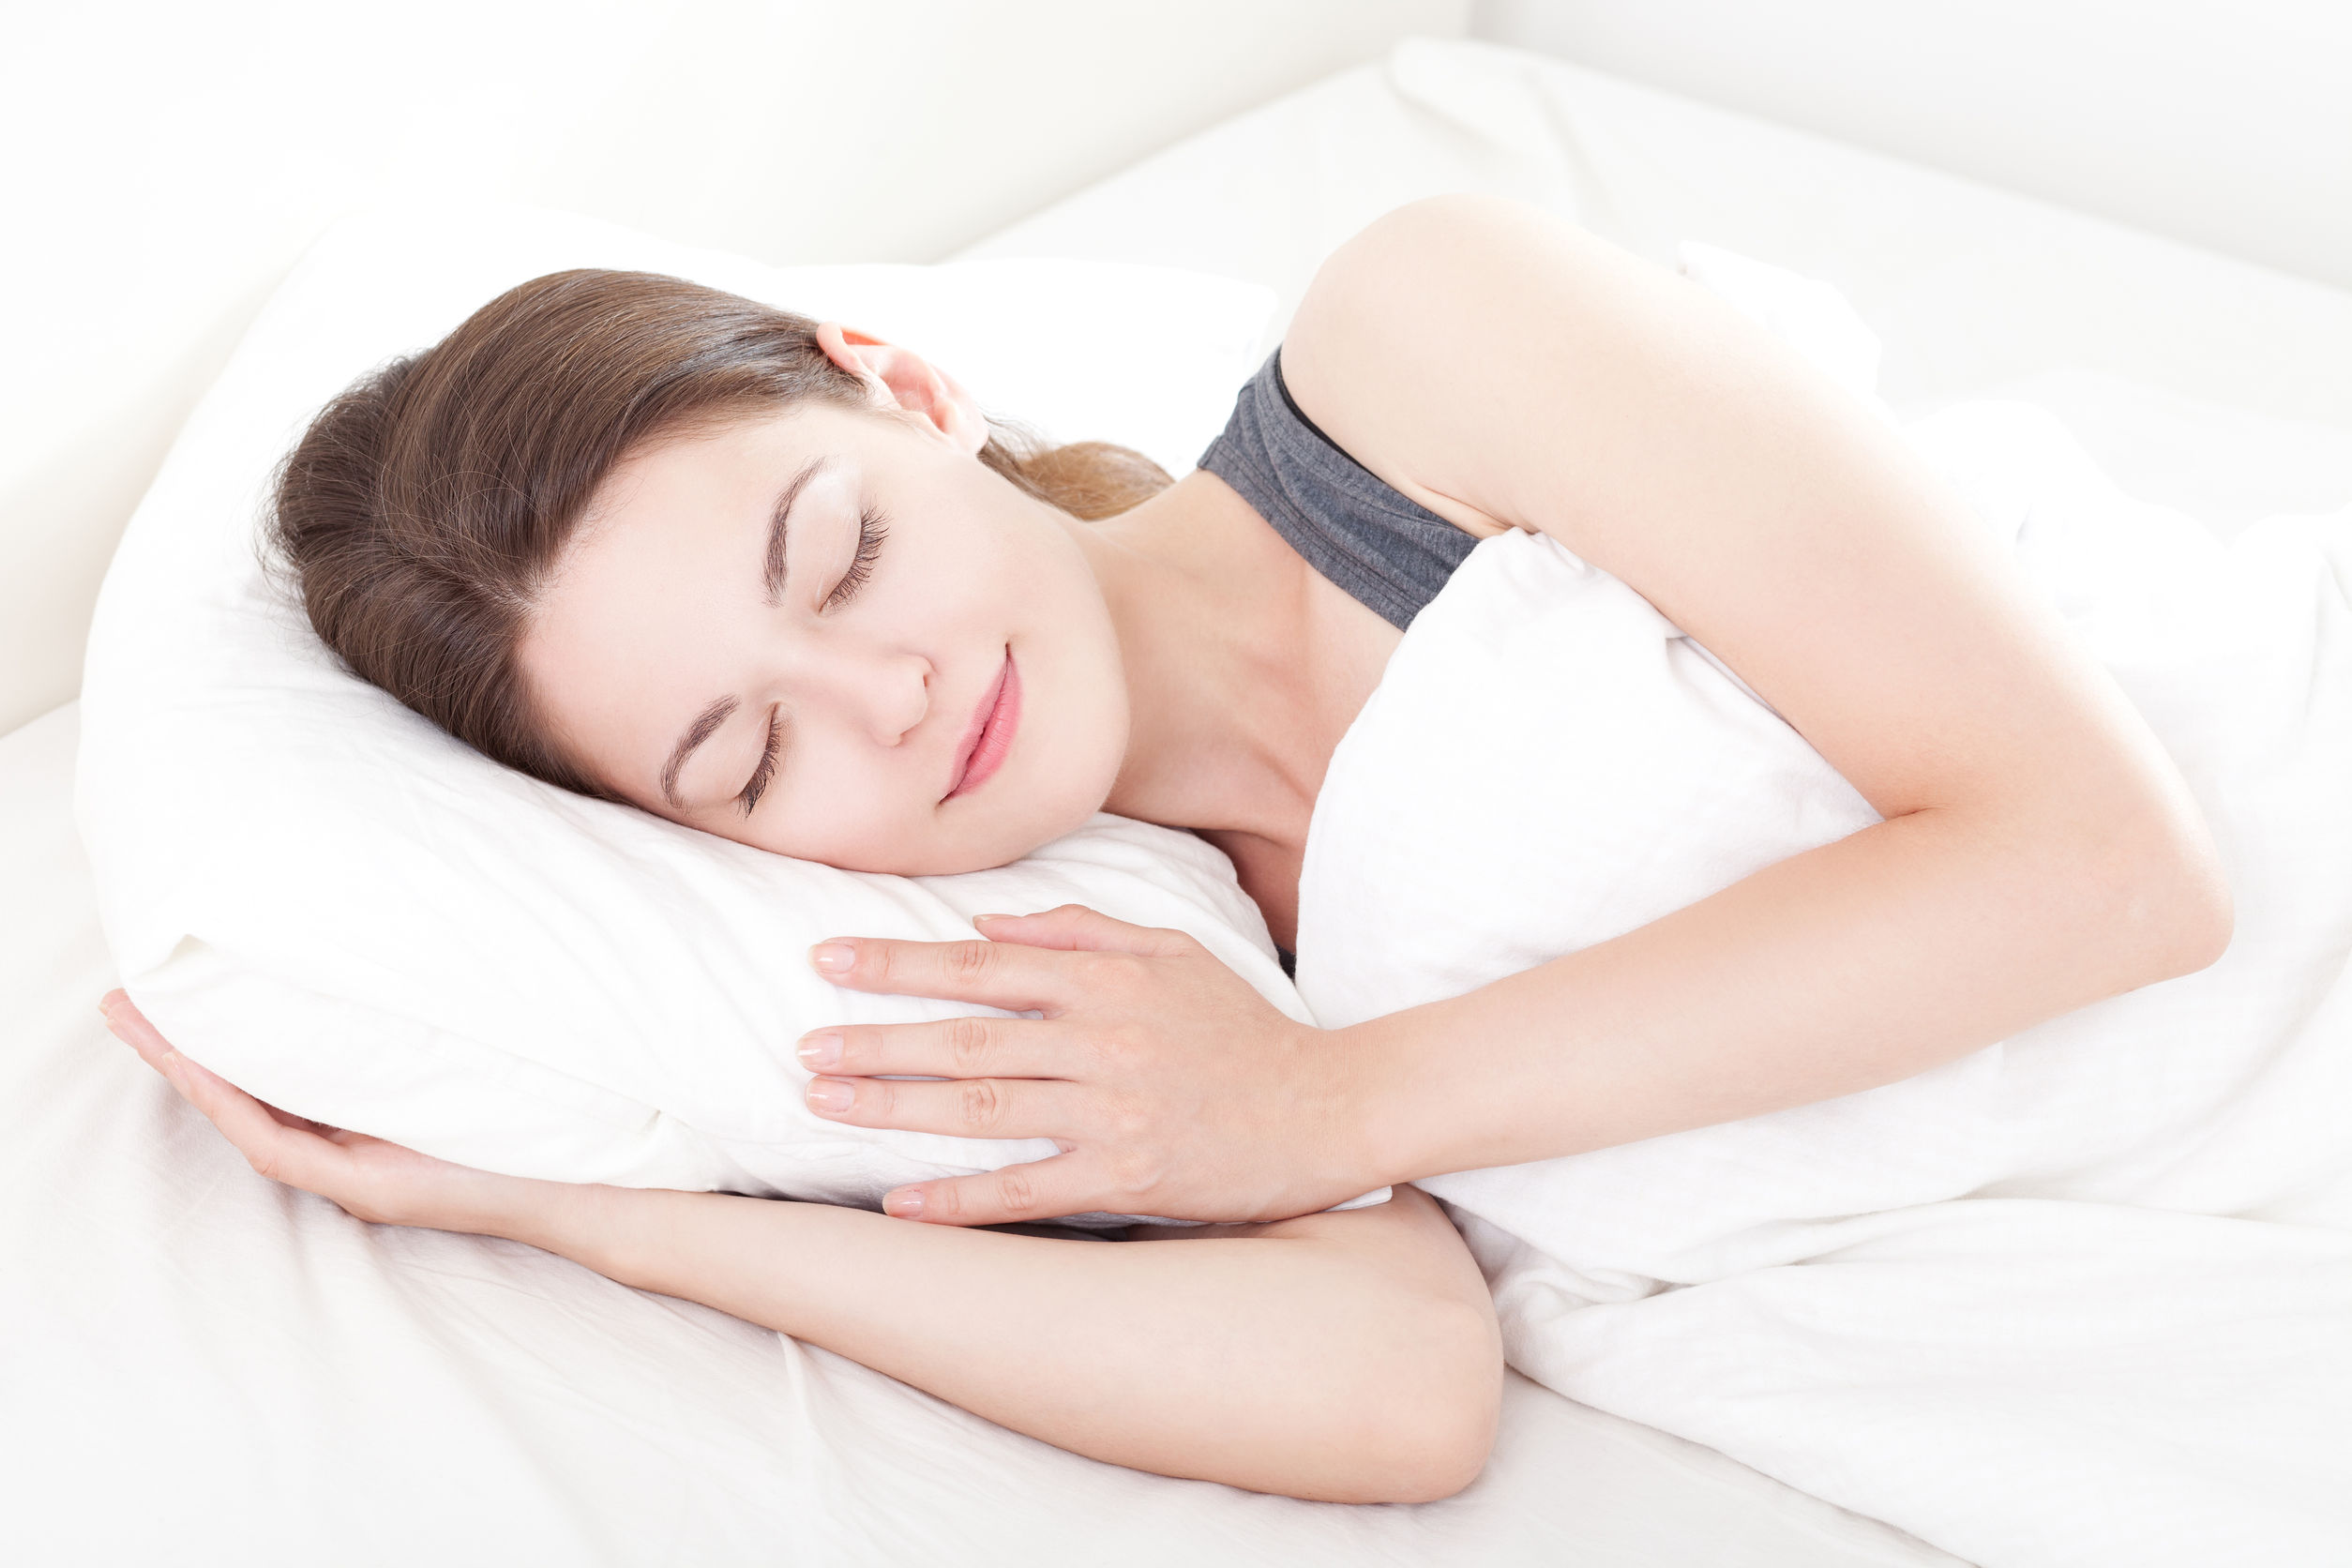 39450868 - beautiful young woman asleep, on white background